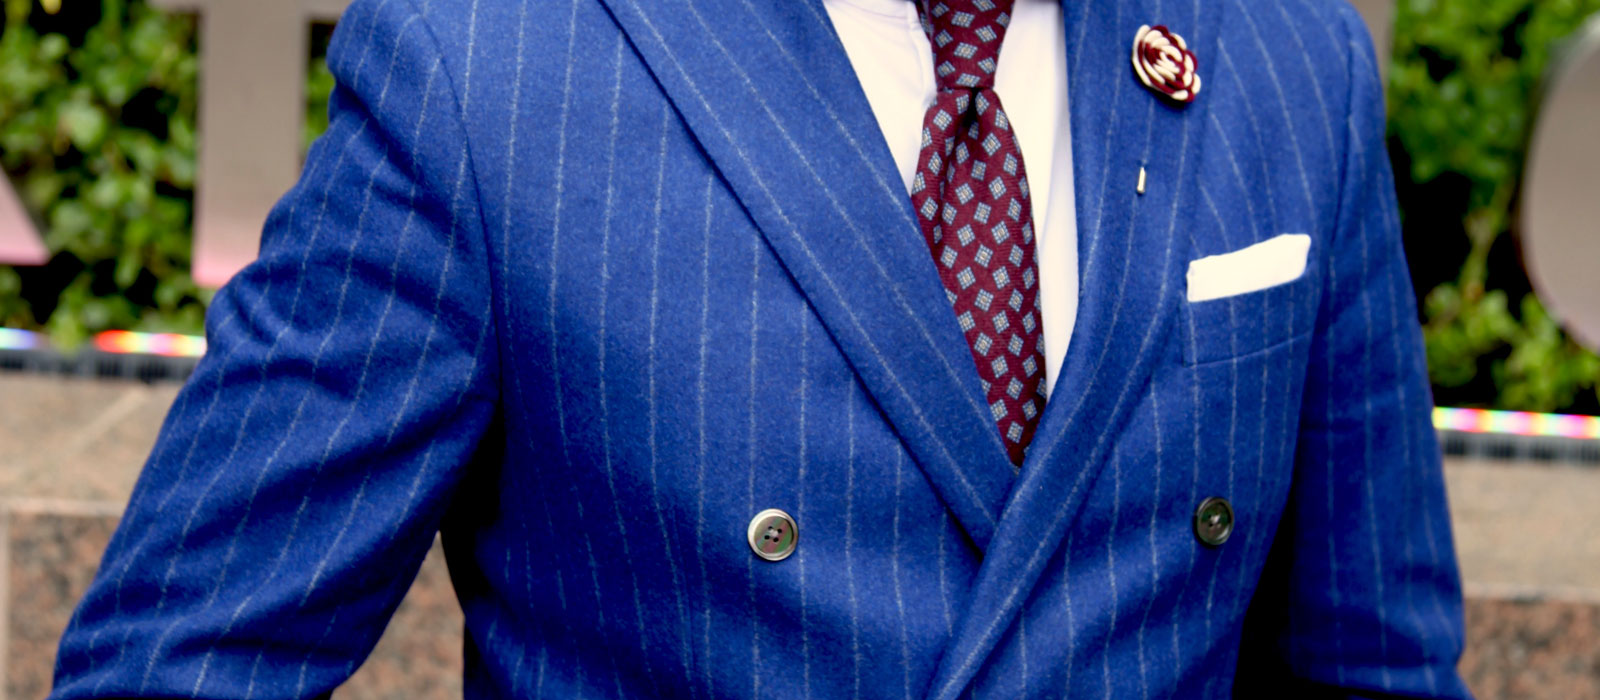 King & Bay Custom Mens Suits Toronto